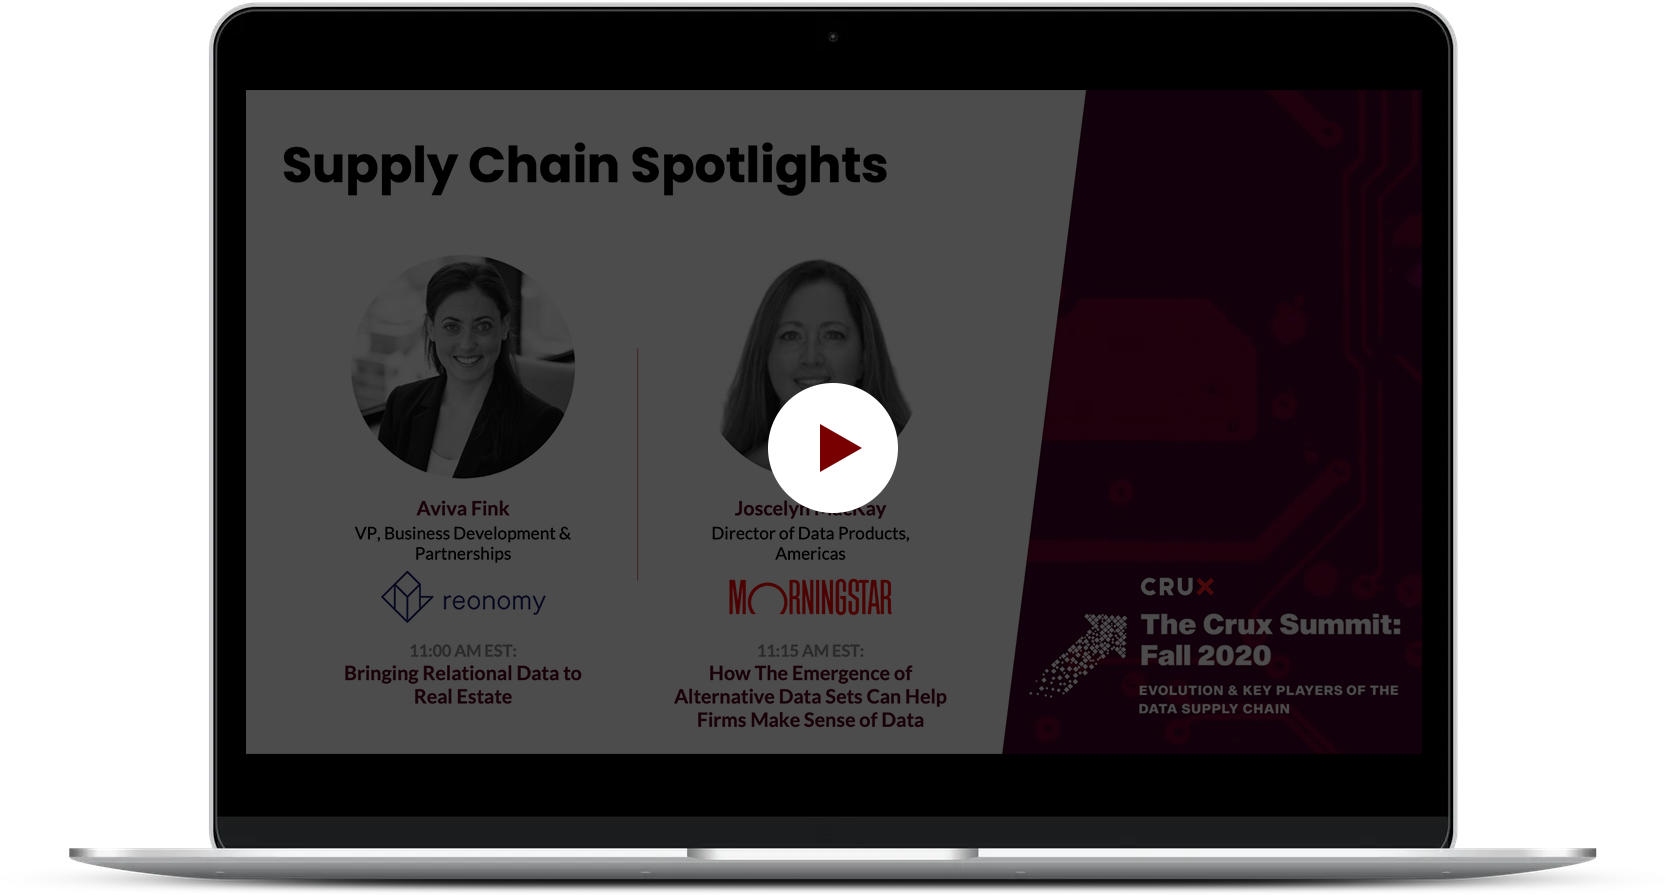 Crux_TCS_SupplyChainSpotlights_09